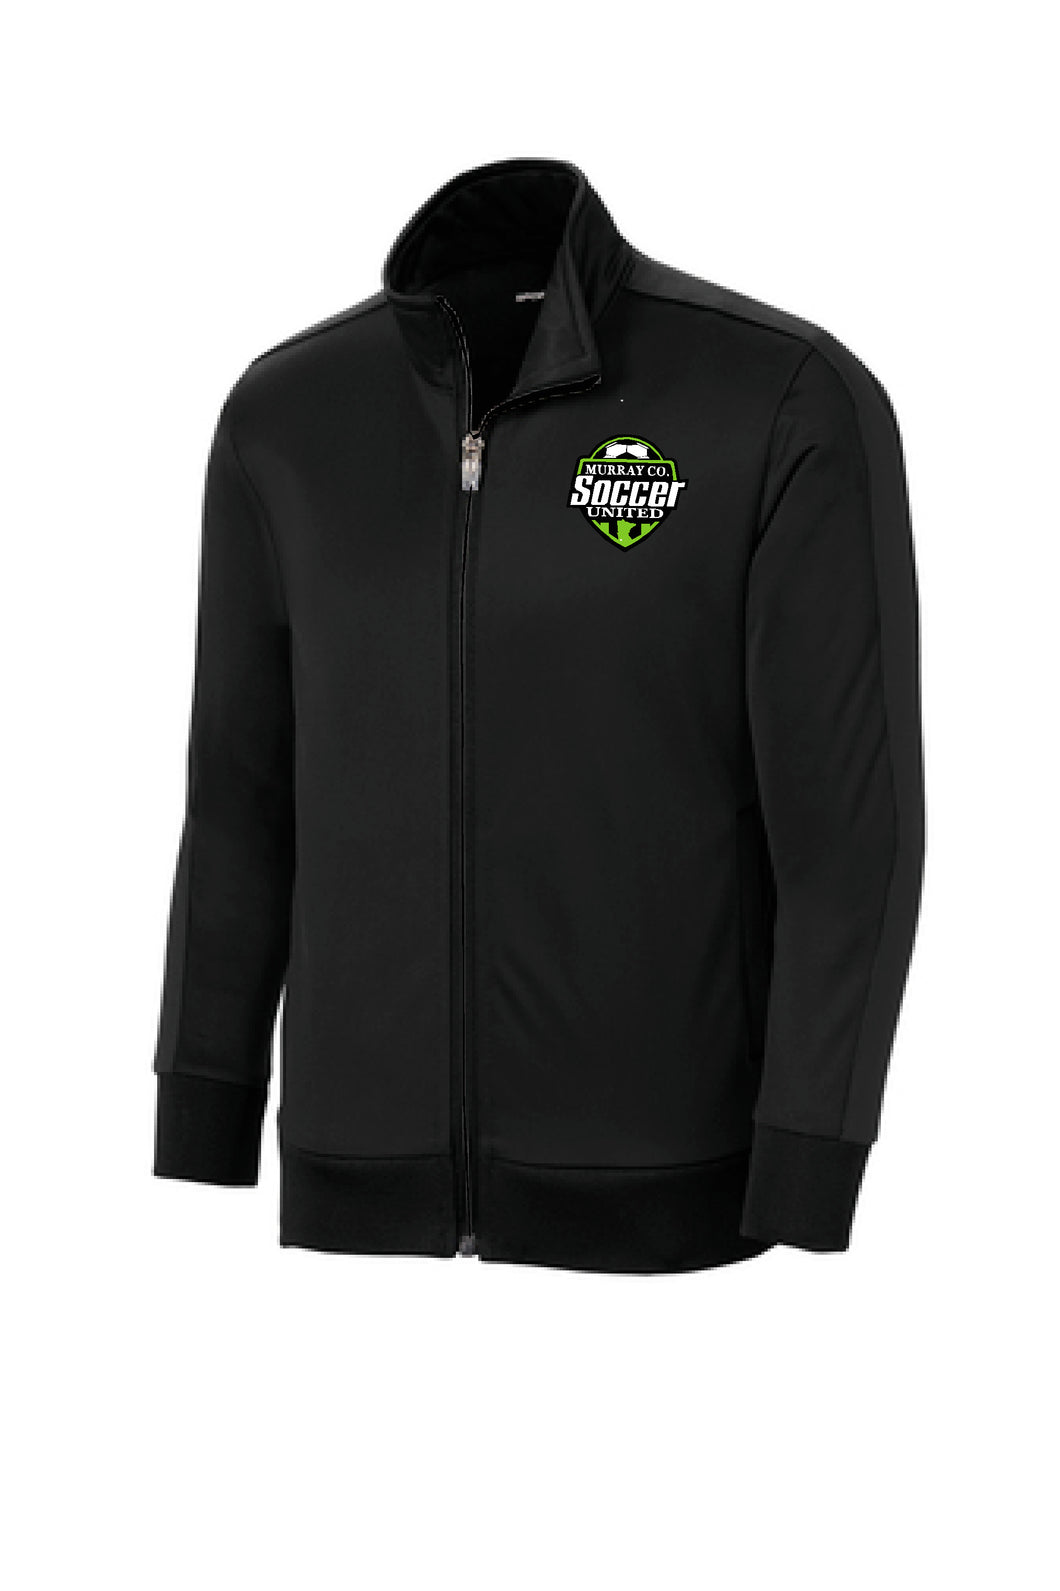 MURRAY COUNTY SOCCER UNITED BLACK TRACK JACKET